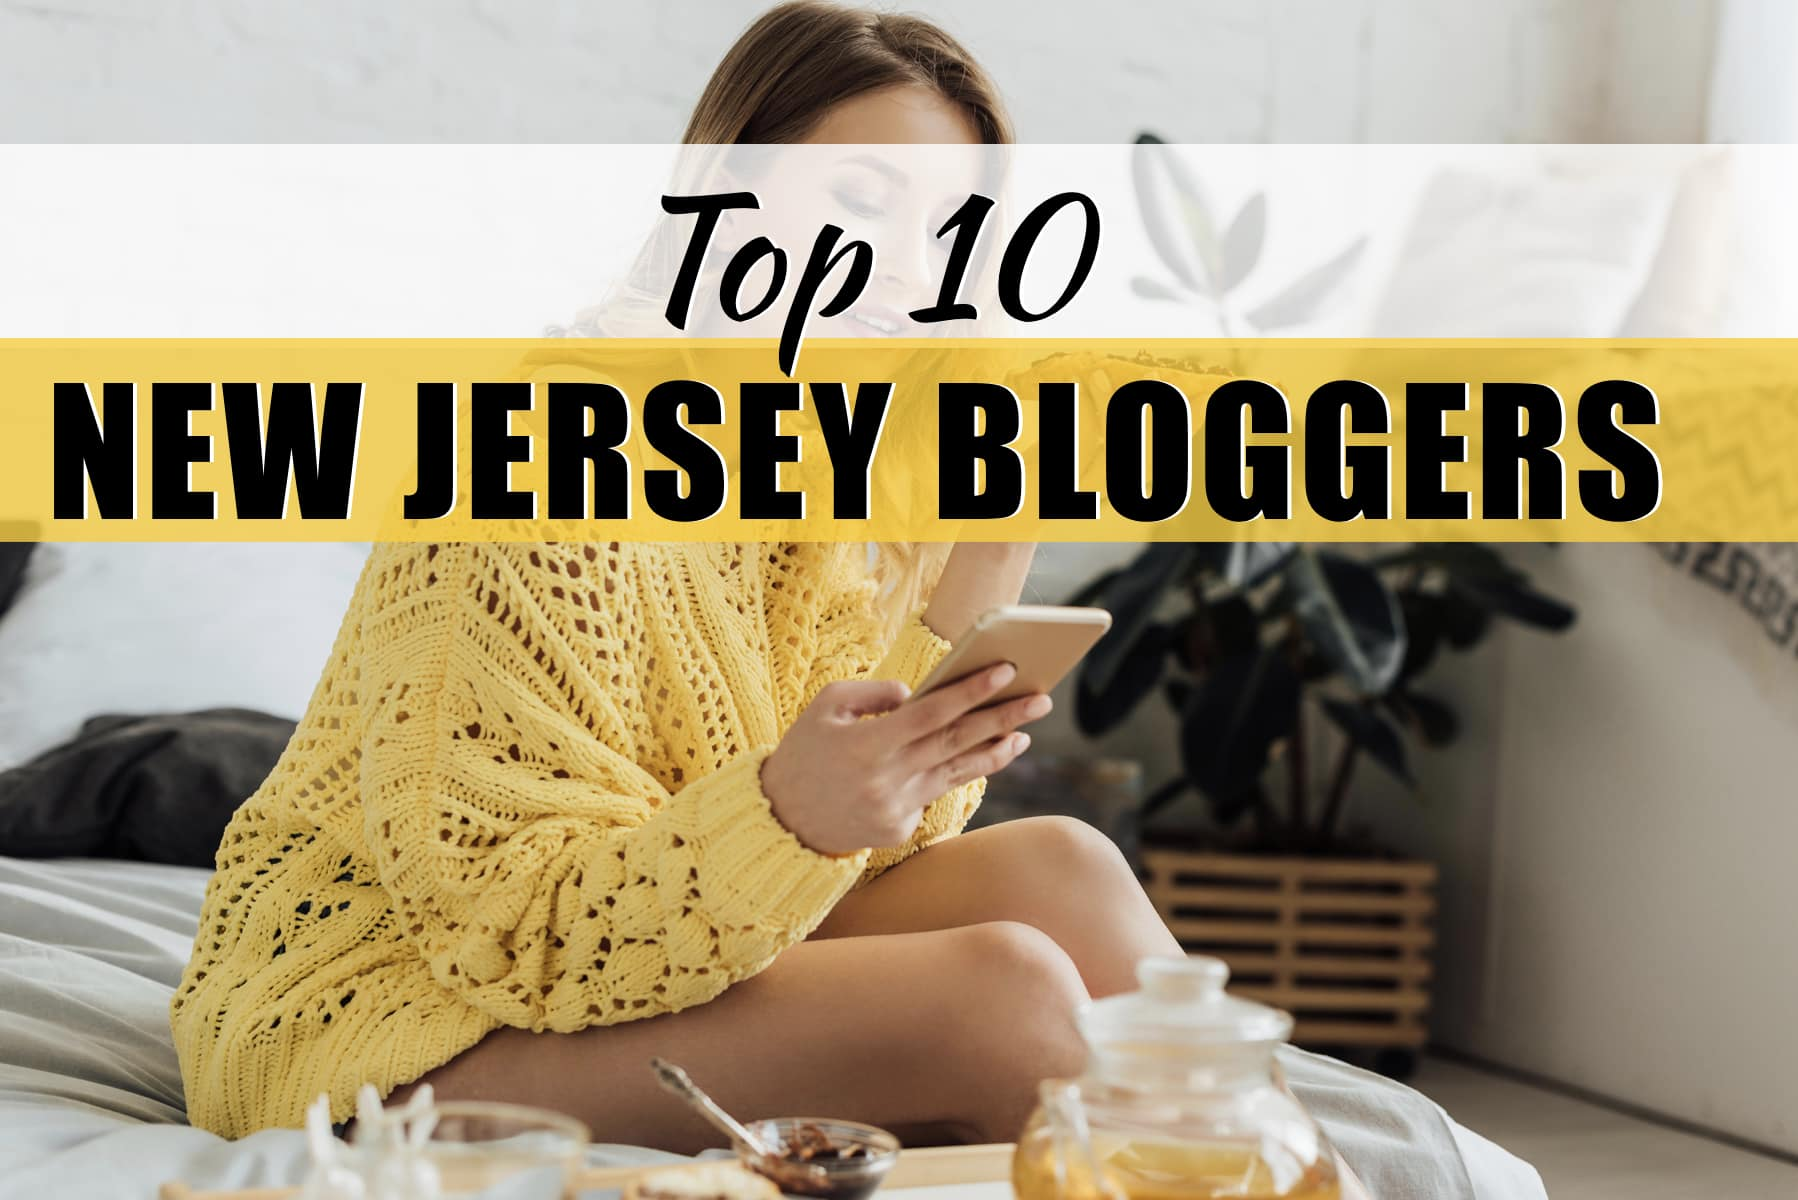 Top 10 New Jersey Bloggers Absolutely Killing It in 2019!